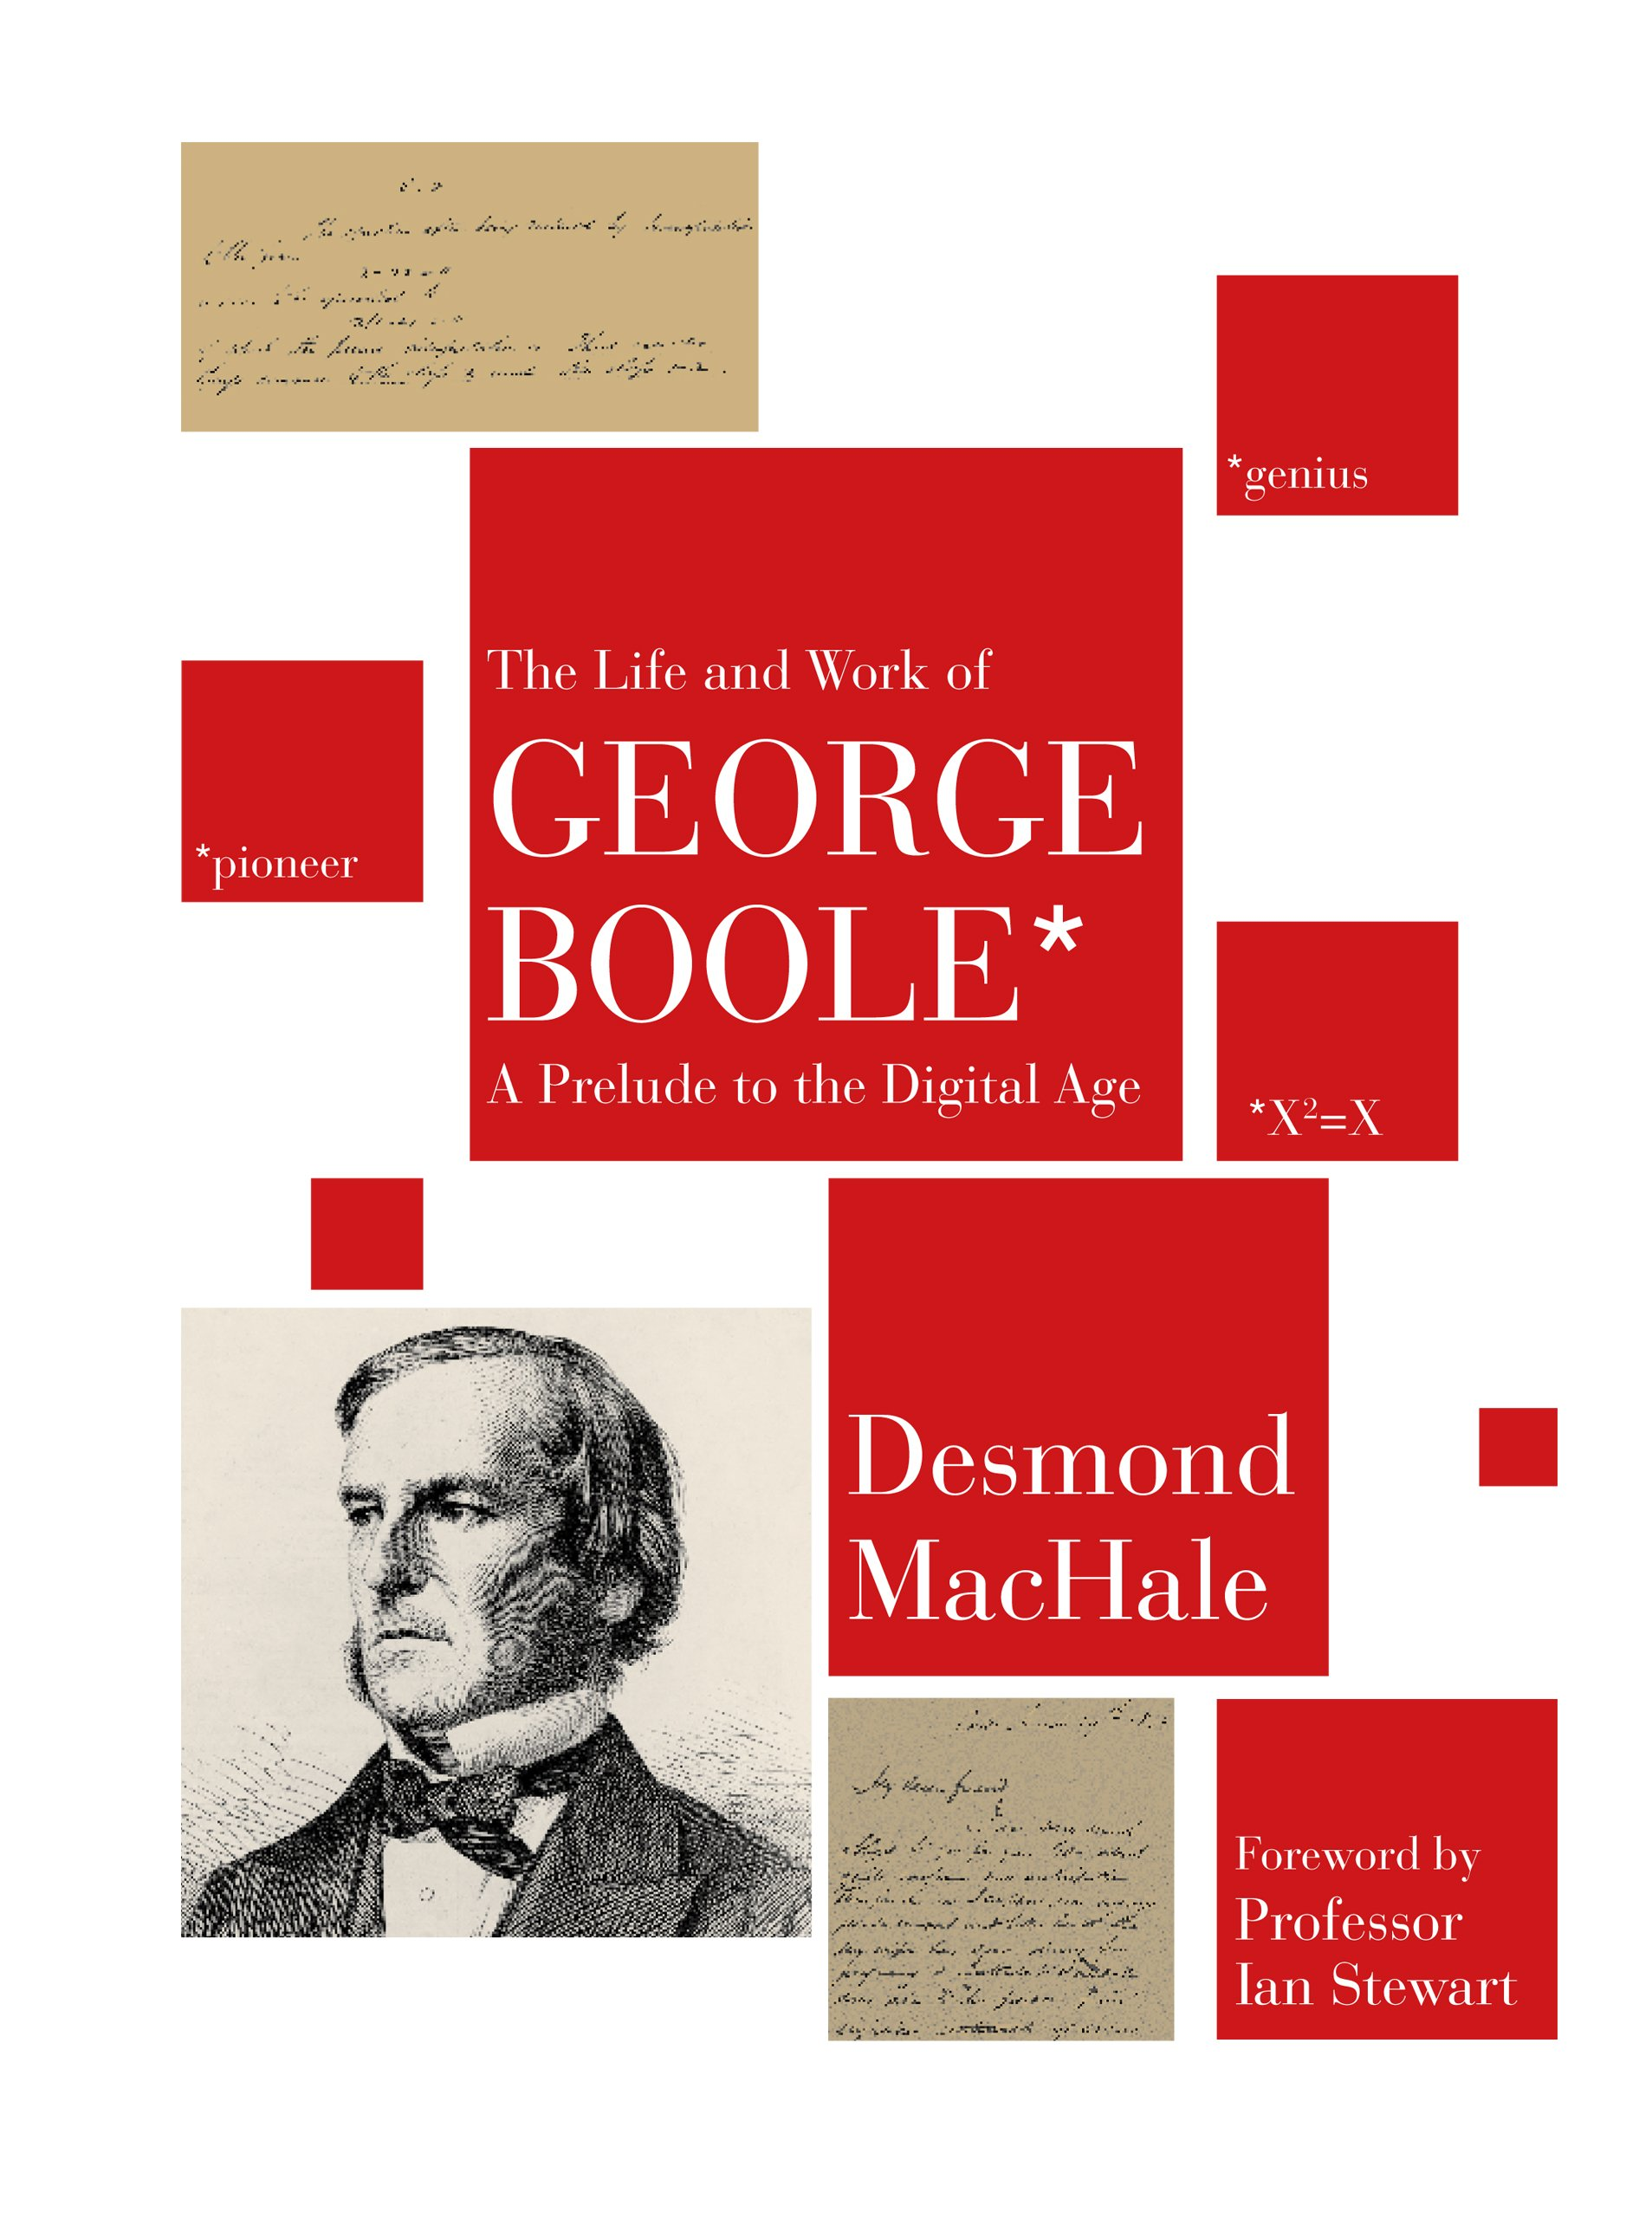 Amazon.com: The Life and Work of George Boole: A Prelude to the ...